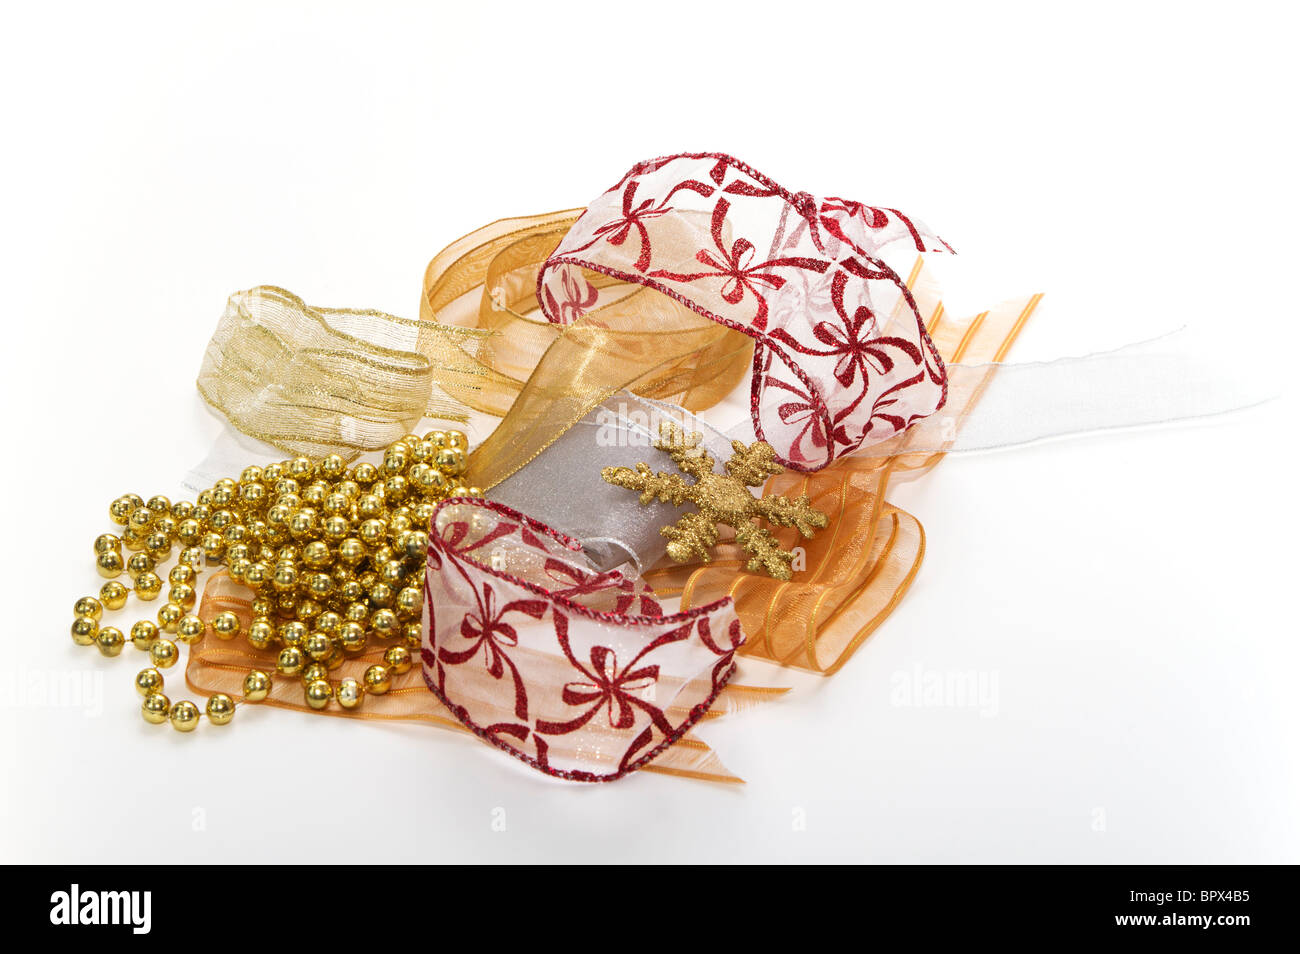 Fancy ribbons for Christmas wrapping with decorations in red, gold, and silver. - Stock Image